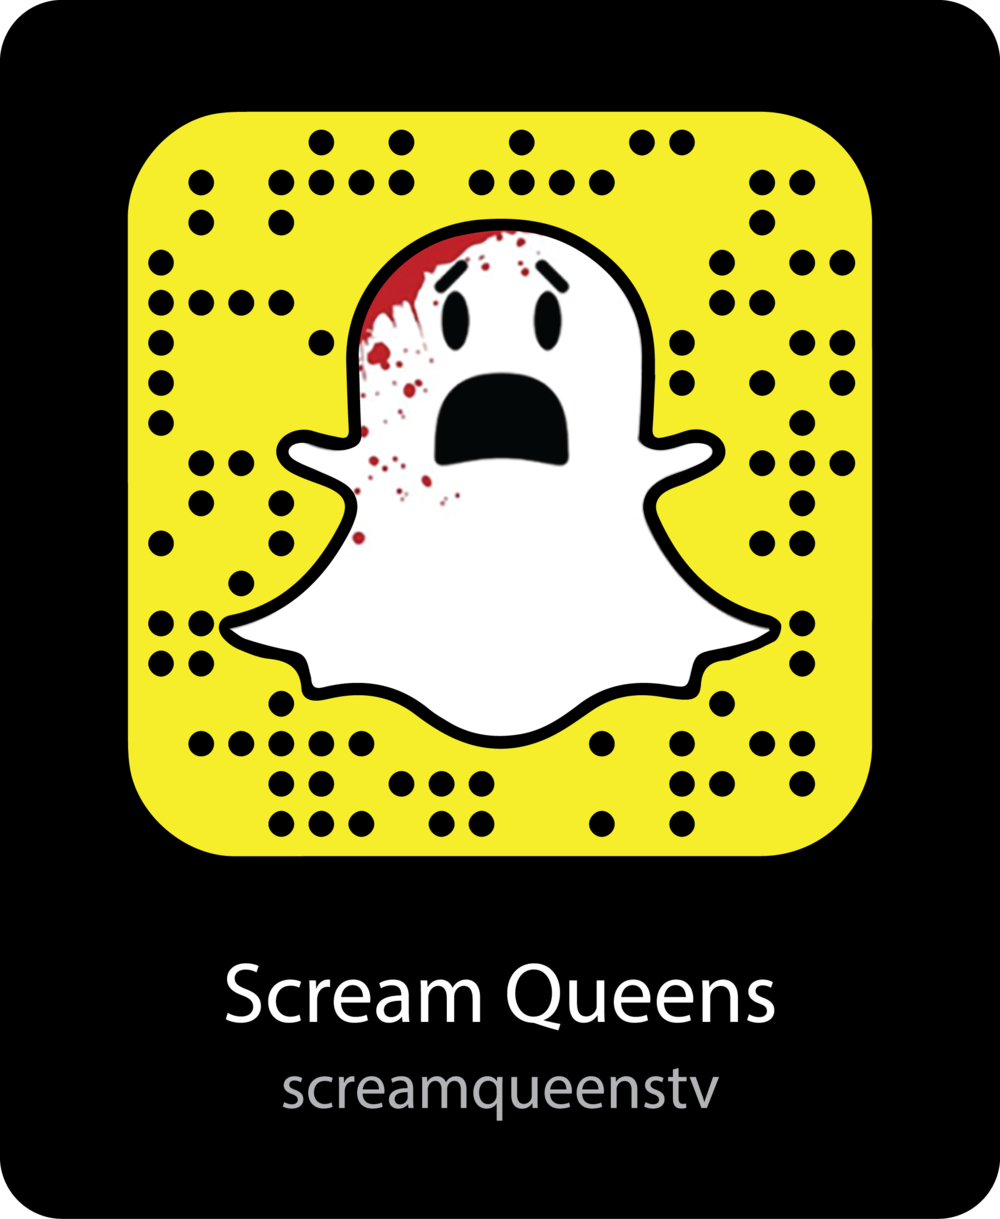 screamqueenstv-Brands-snapchat-snapcode.png